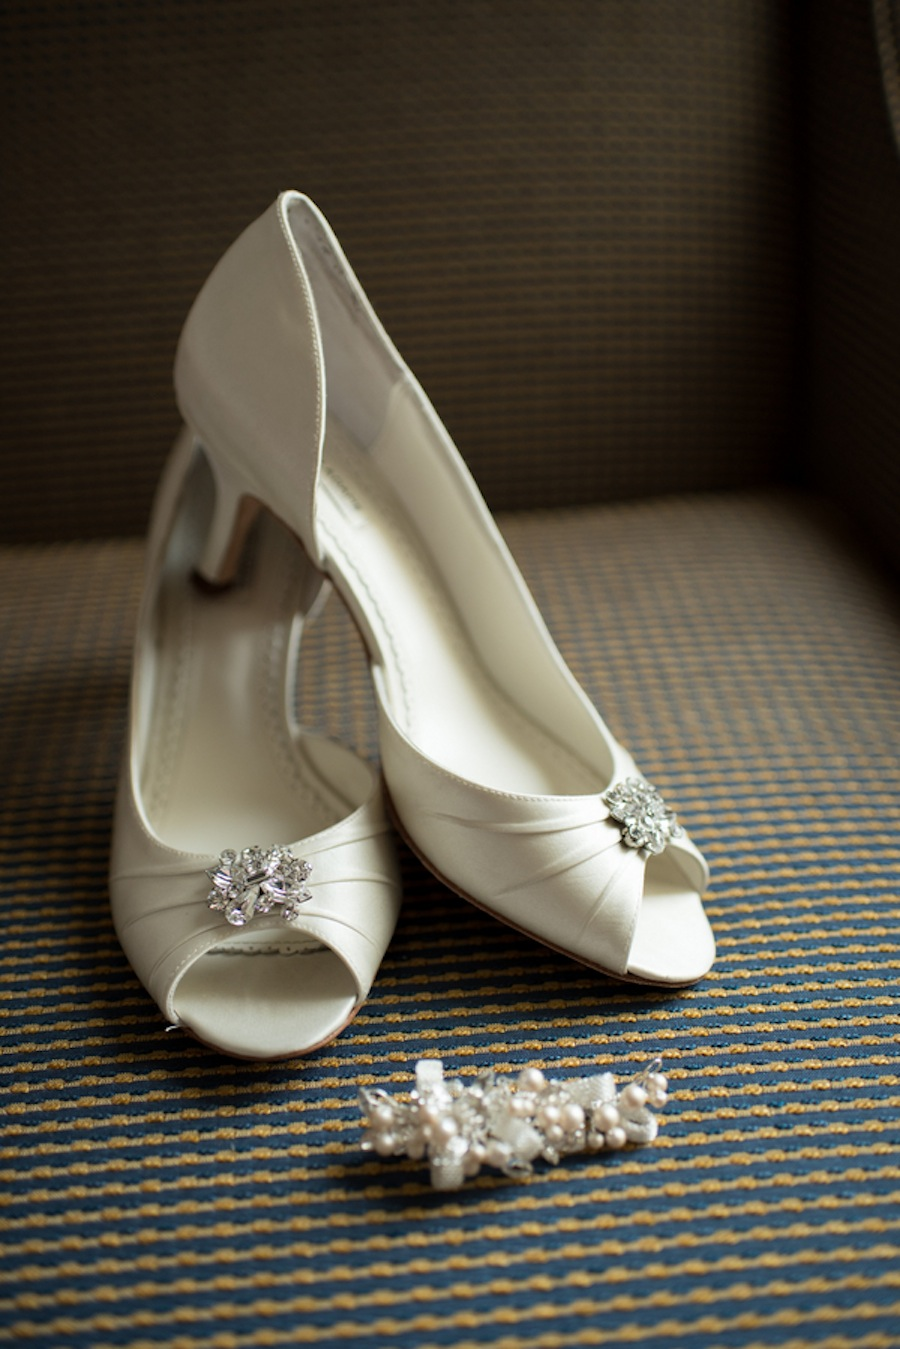 White Wedding Shoes with a Low Heel